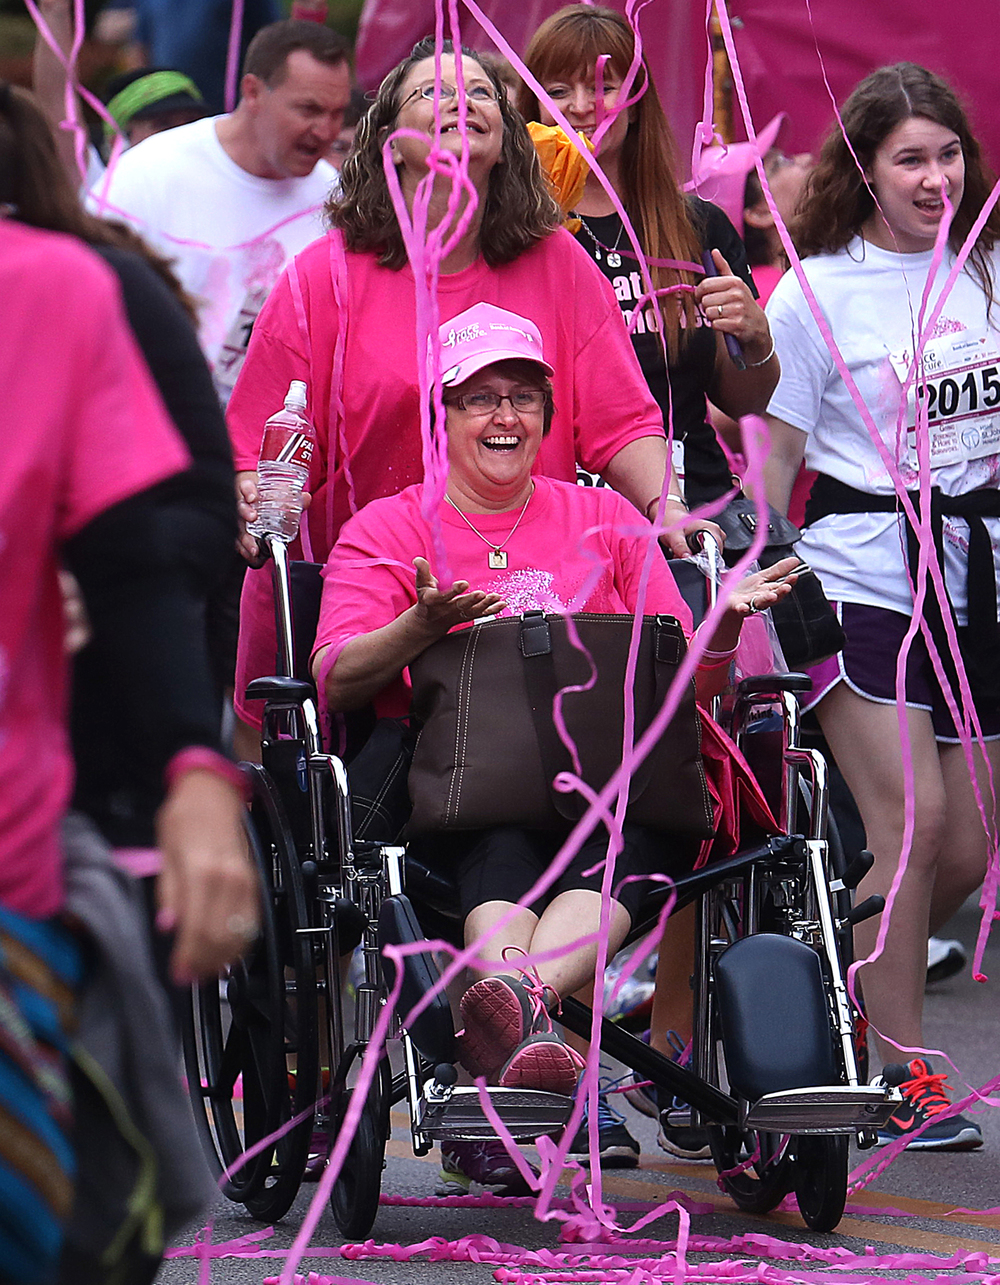 Dinah Boehm of Shelbyville, a nine-month breast cancer survivor, holds out her hands to catch streamers shot into the air at the beginning of the Second Annual Susan G. Komen Springfield Race for the Cure Friday, May 15, 2015 at Second Street and Capitol Avenue. Boehm's friend, Sandy Falk of Effingham, was pushing the wheelchair. The fundraising event drew 2200 participants who took part in a competitive 5K race, a 5K family run/walk as well as a one mile family walk. David Spencer/The State Journal-Register